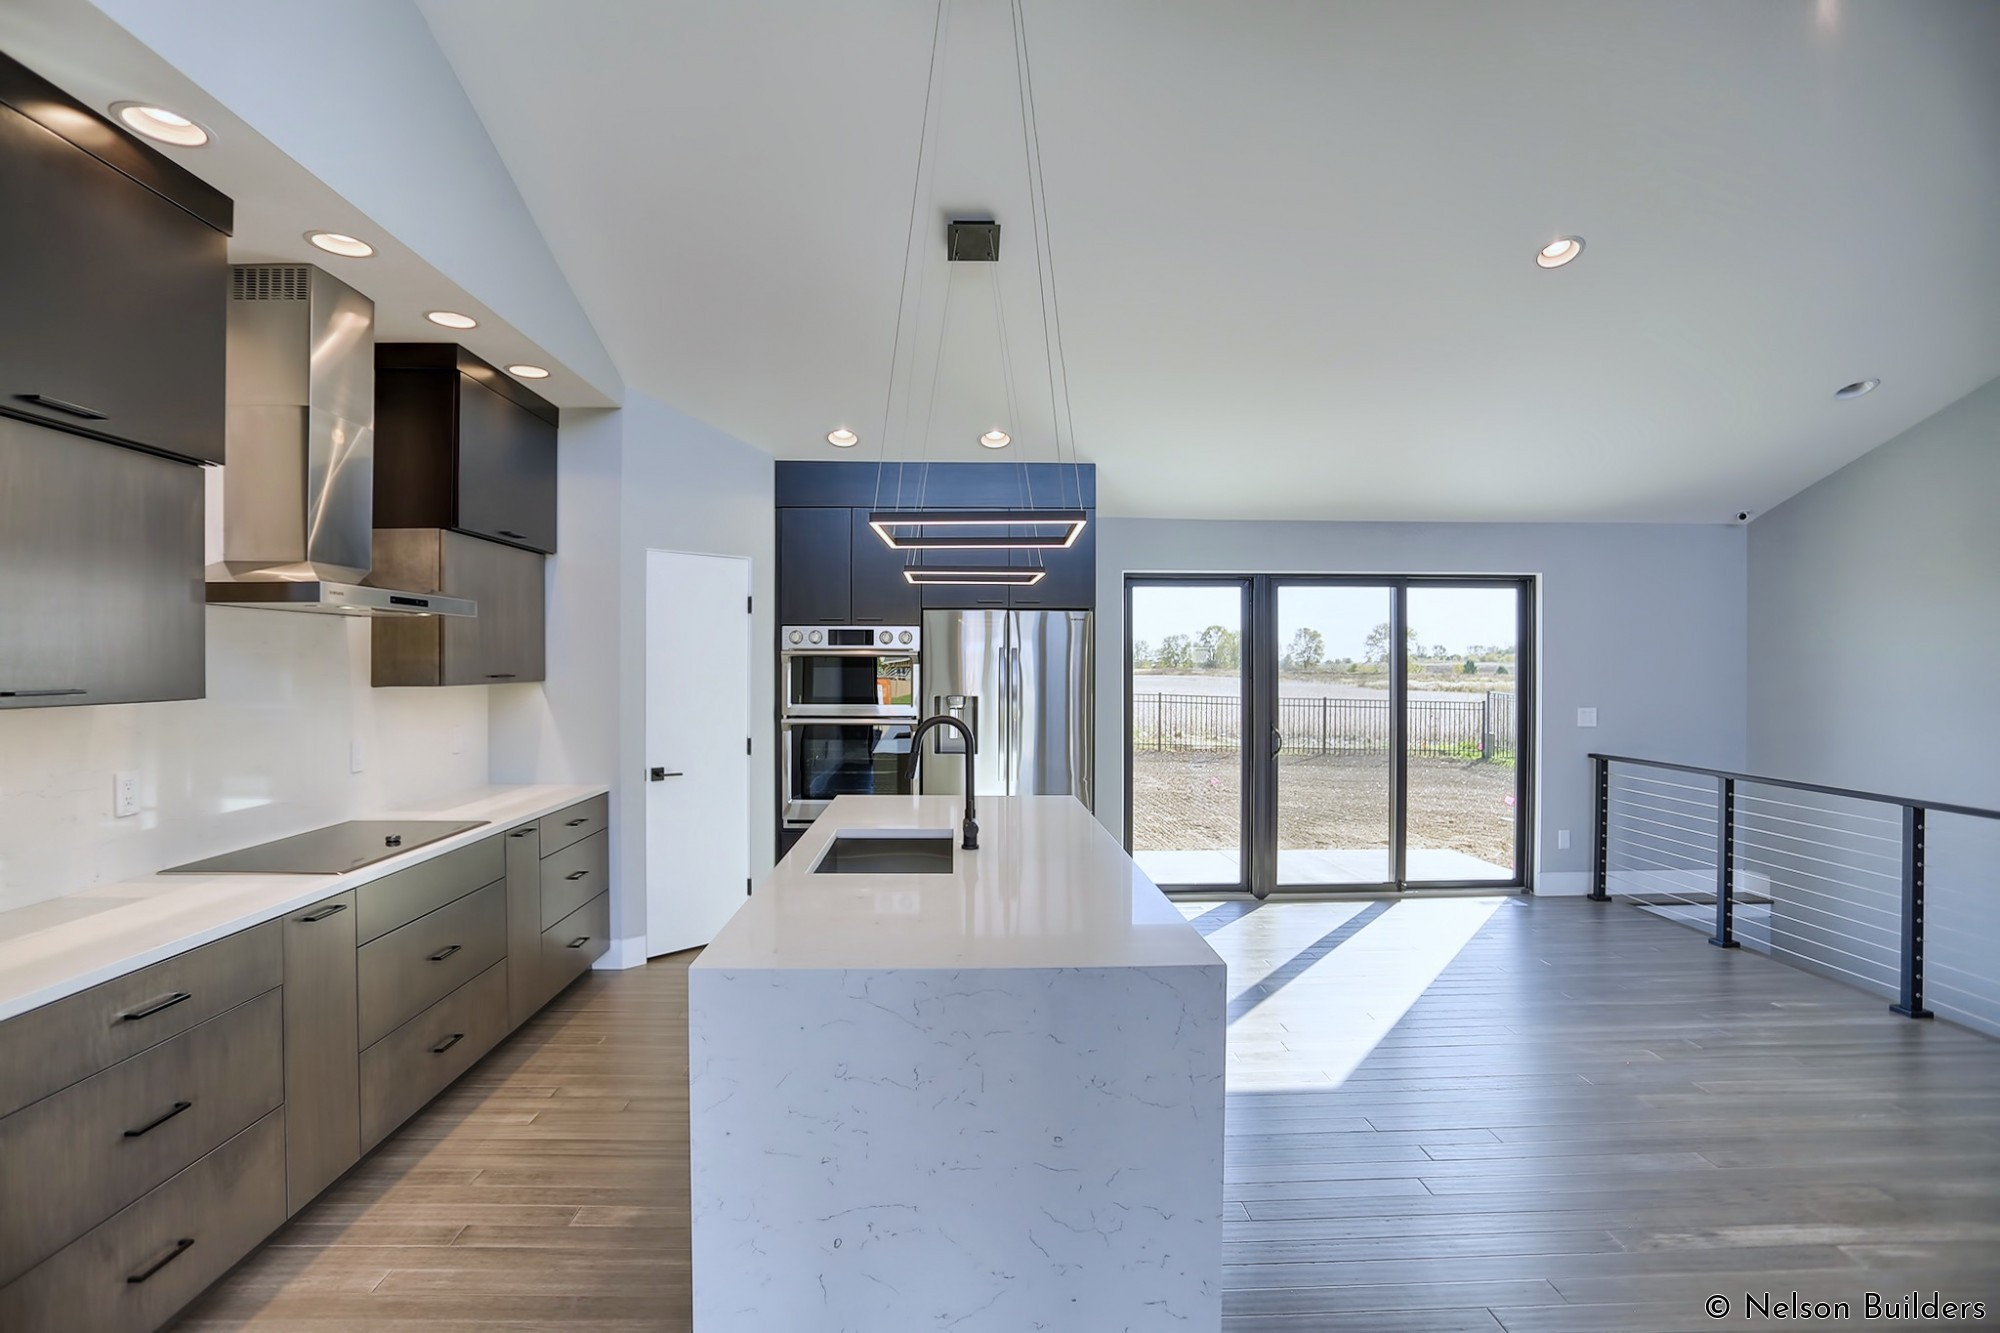 The eat-in kitchen is flanked on one side by a cable railing and the waterfall quartz island on the other.